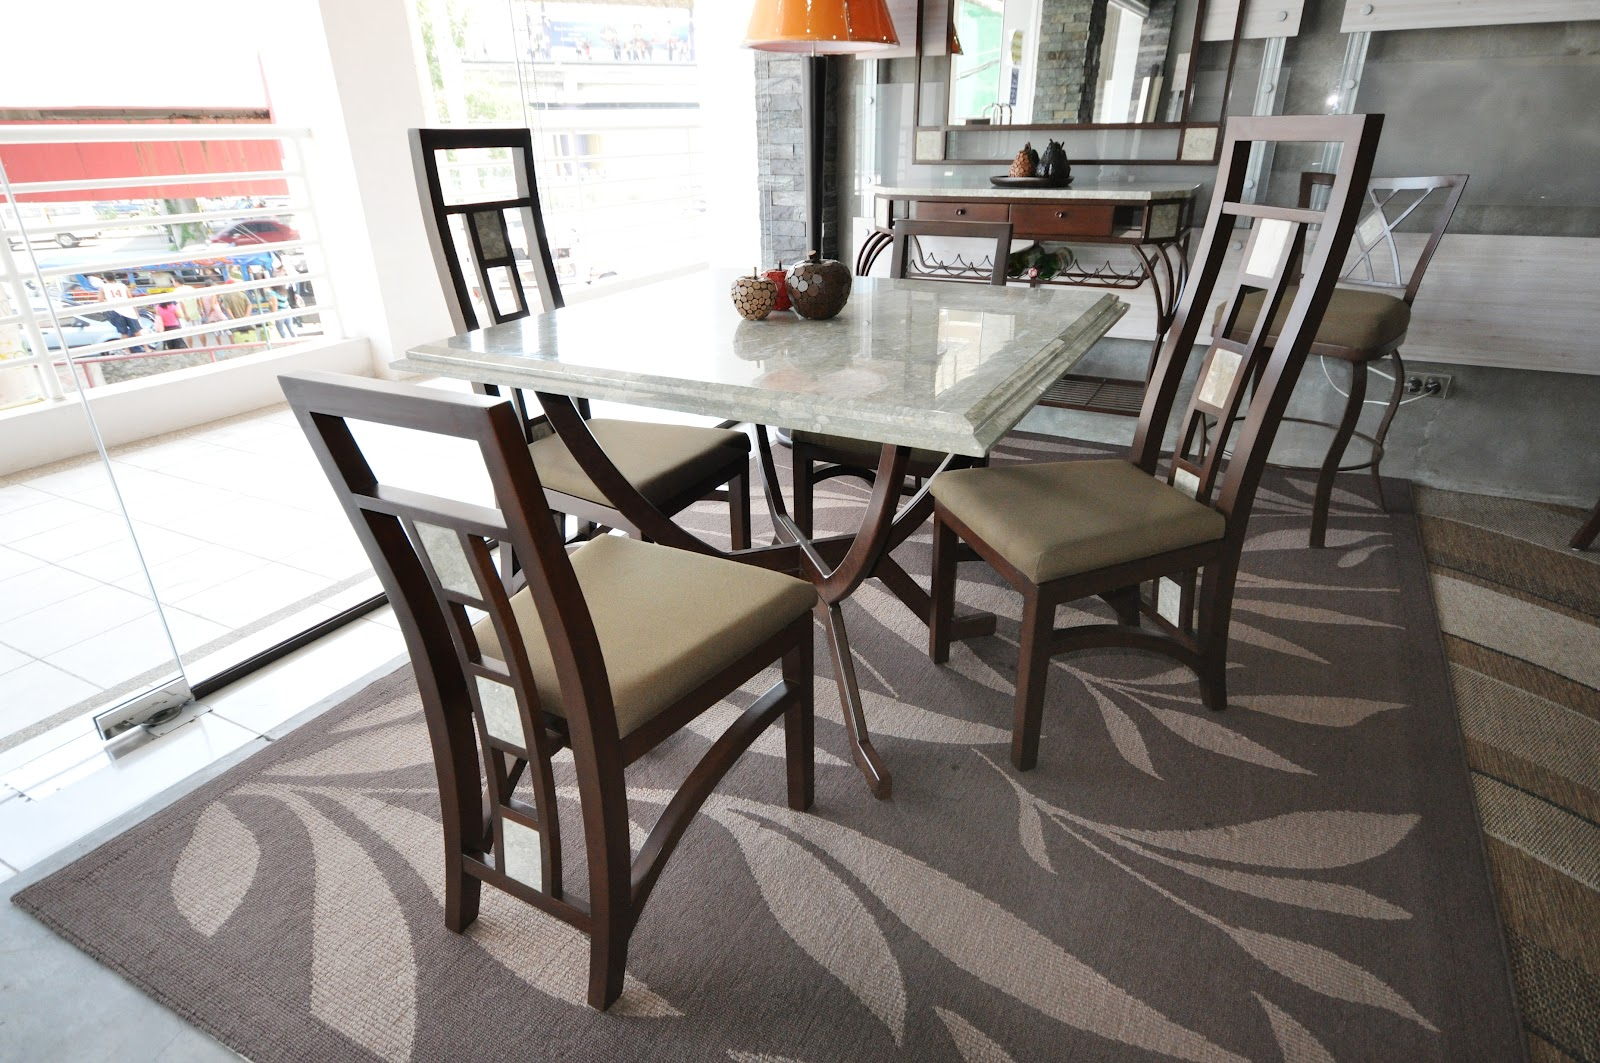 & Square Dining Table Set - Dolores Collection